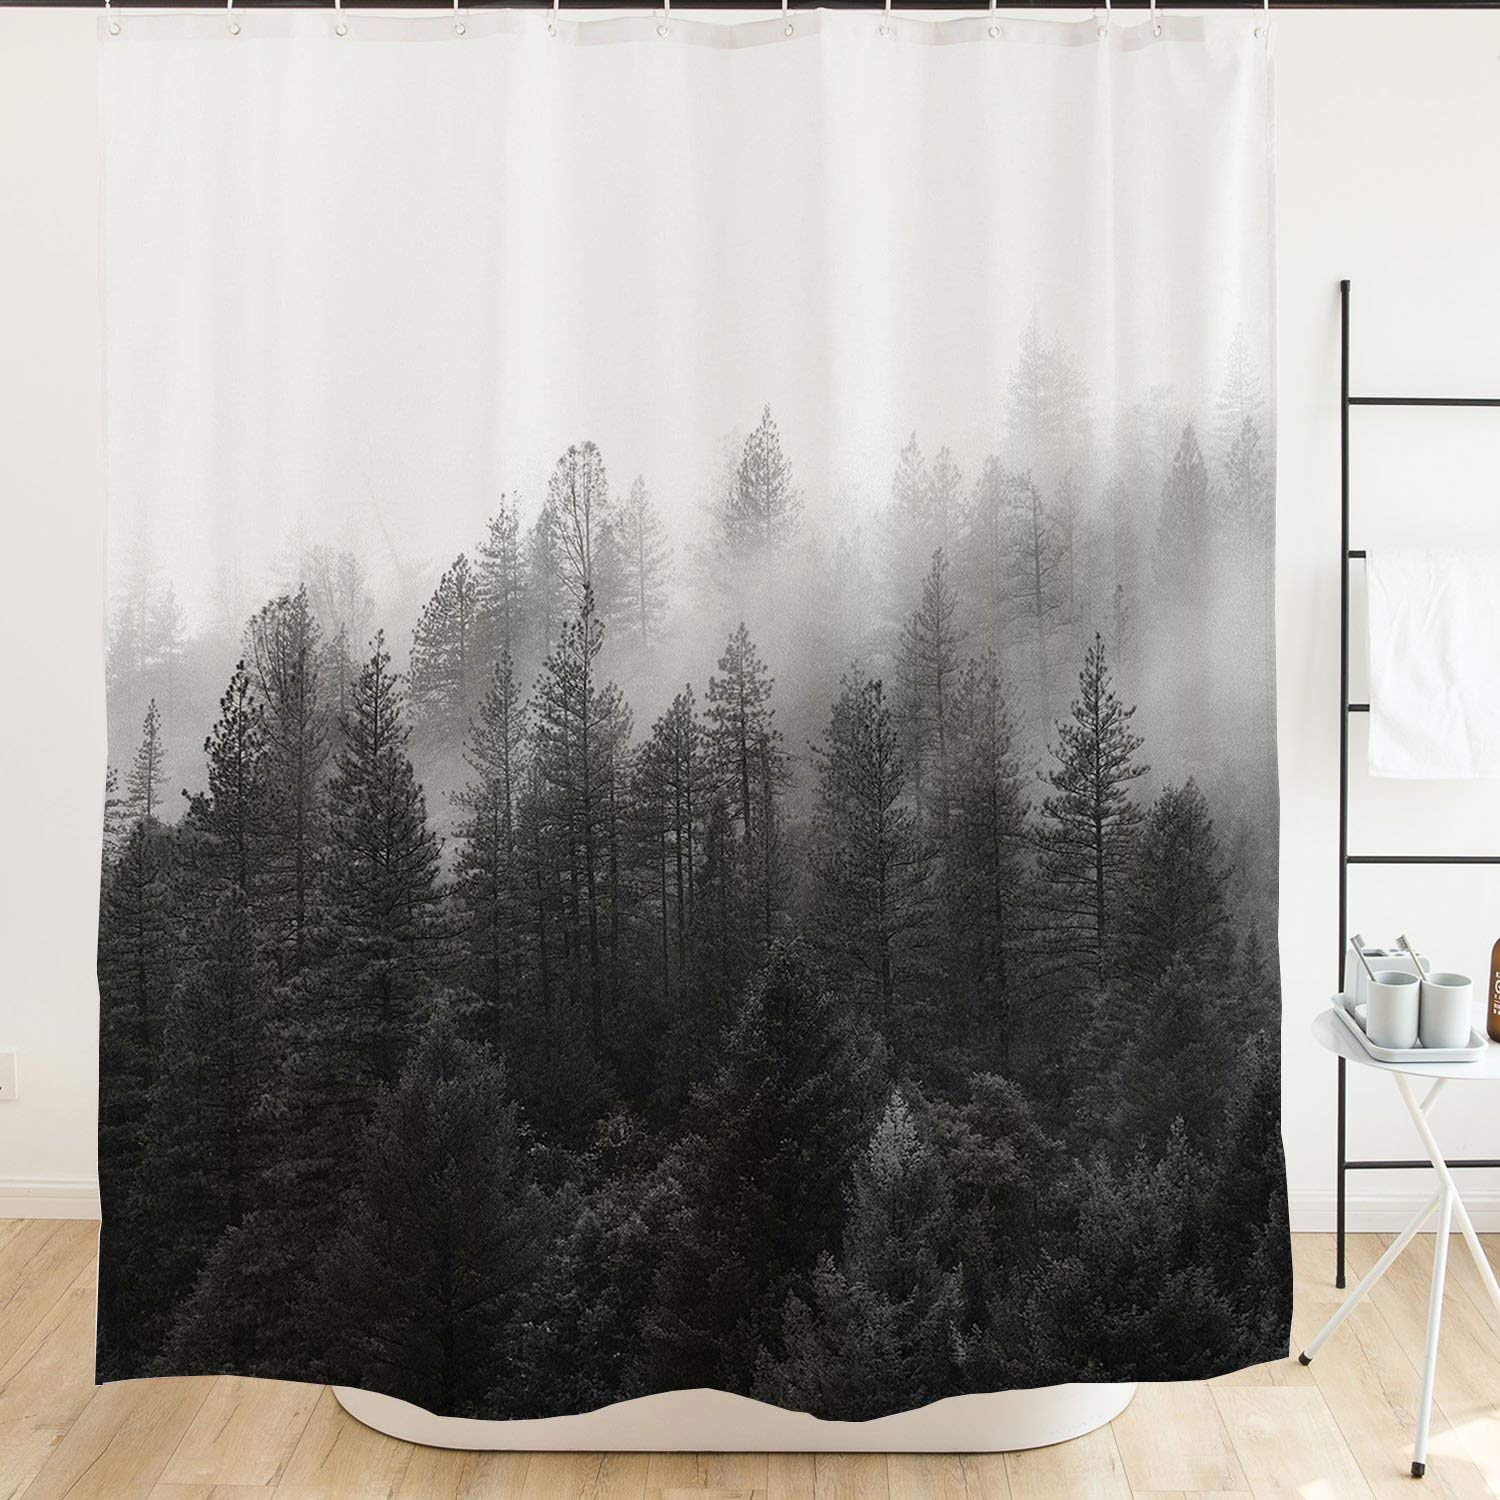 Orange Design Foggy Forest Shower Curtain Black And White Misty Trees National Park Mountain Cloud